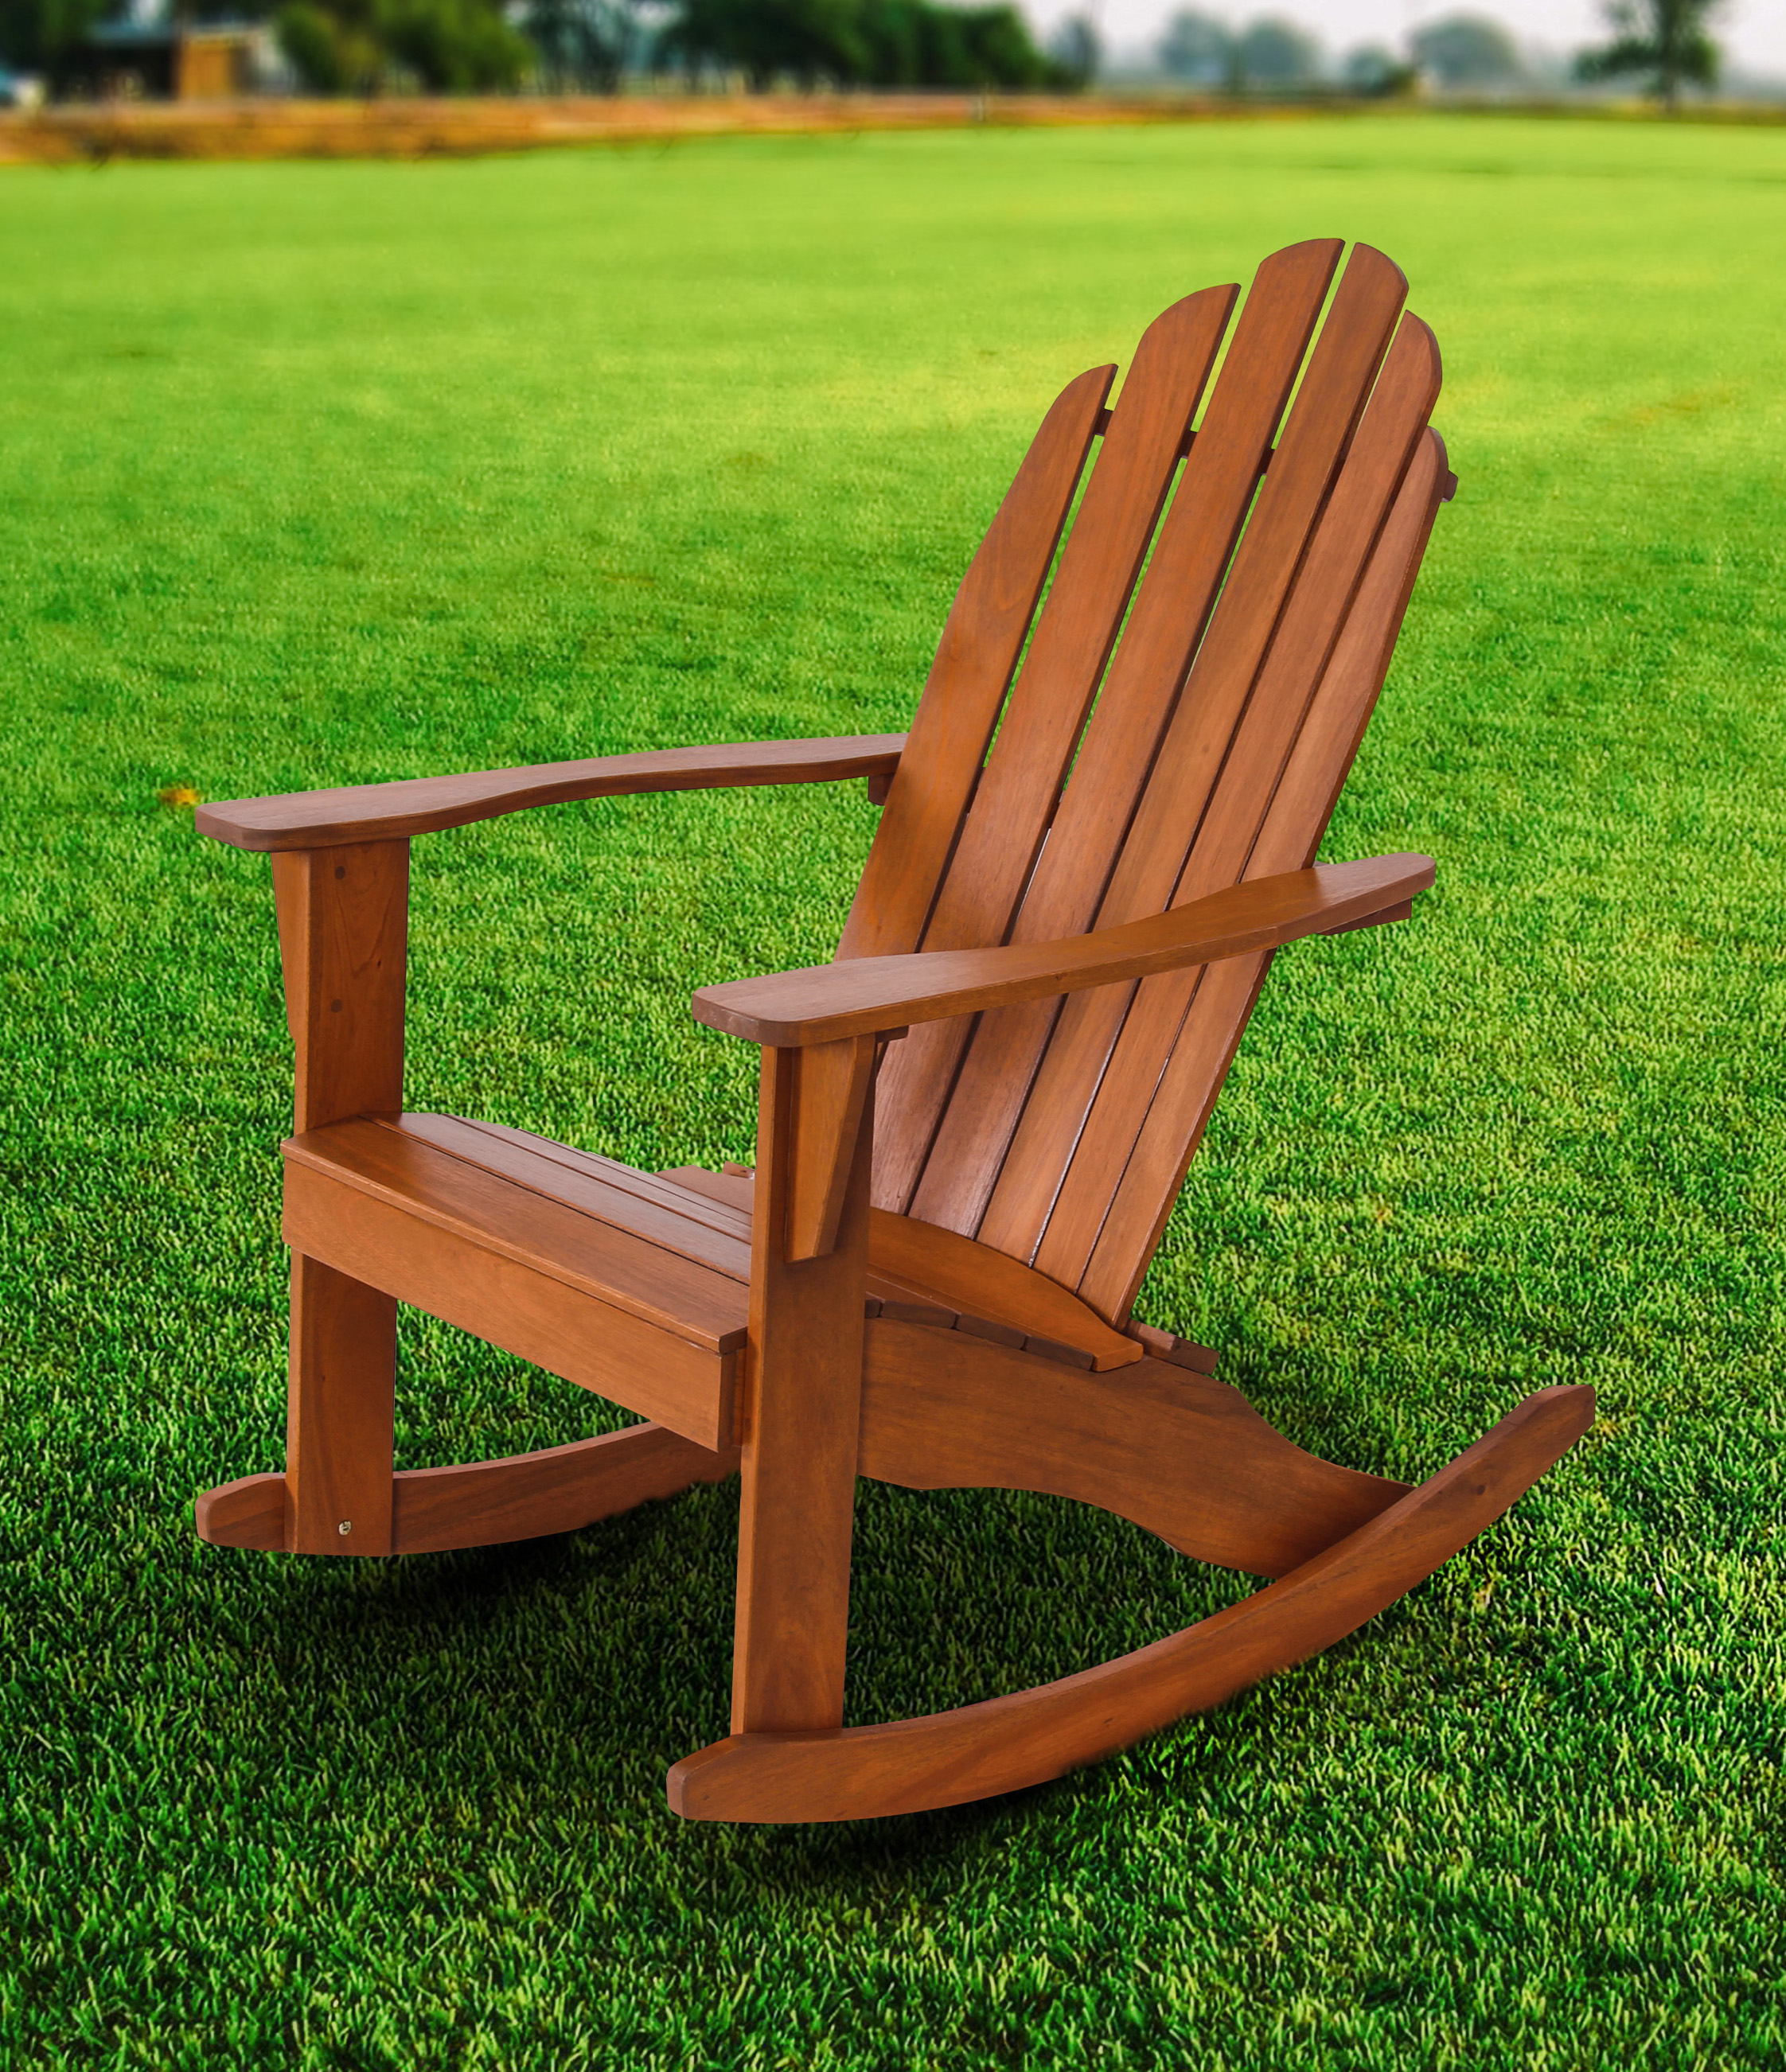 Inspiration about Mainstays Wood Adirondack Rocking Chair, Natural With Regard To Natural Brown Wood Folding Rocking Chairs (#20 of 20)